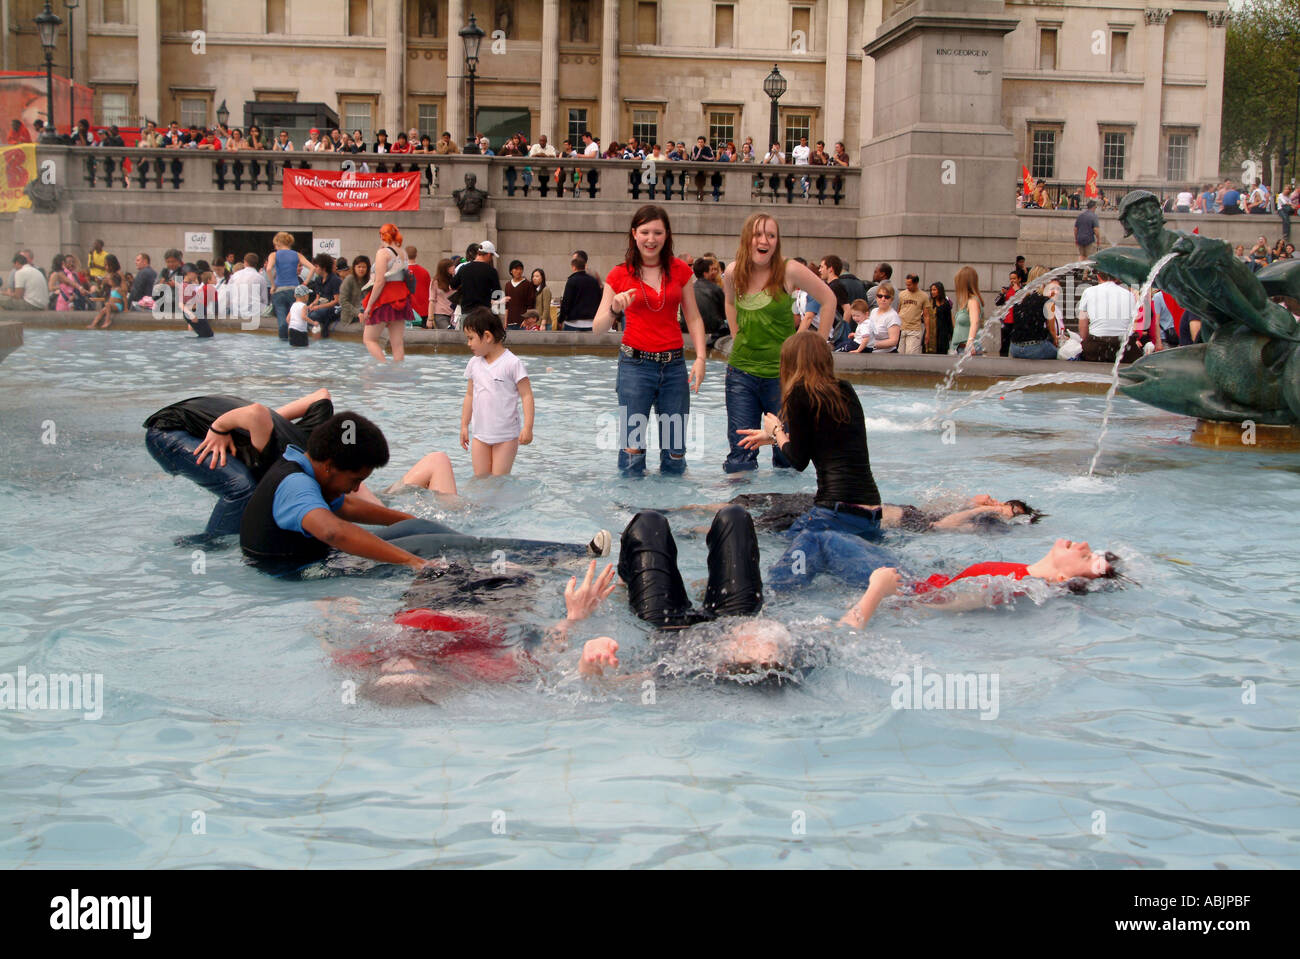 YOUNGSTER COOLING IN THE POOL AT TRAFALGAR SQ 2005 - Stock Image